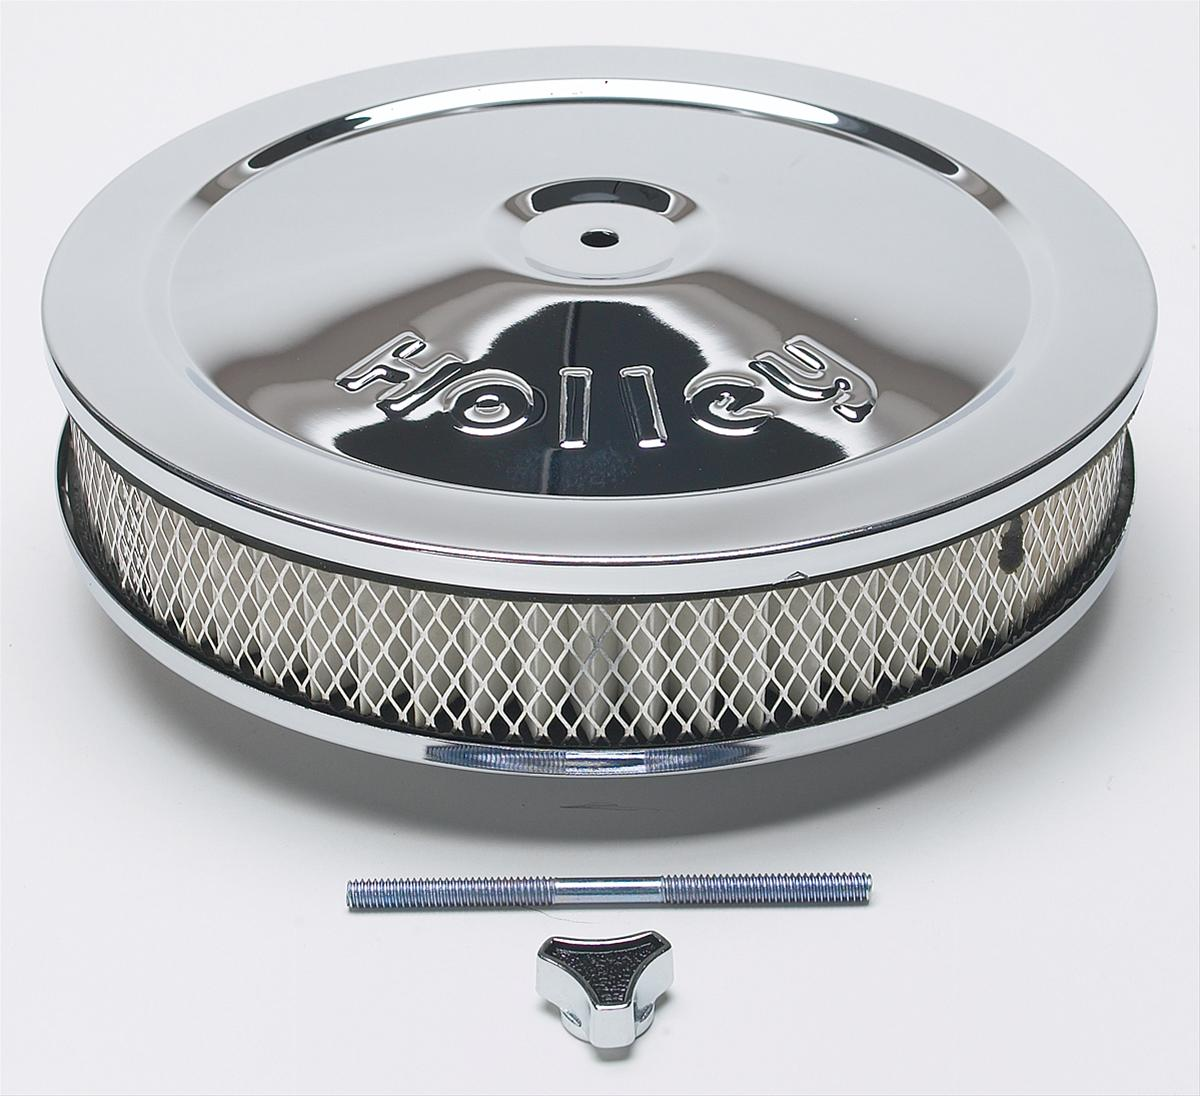 Holley Air Cleaner : Holley chrome air cleaner quot dia round white paper